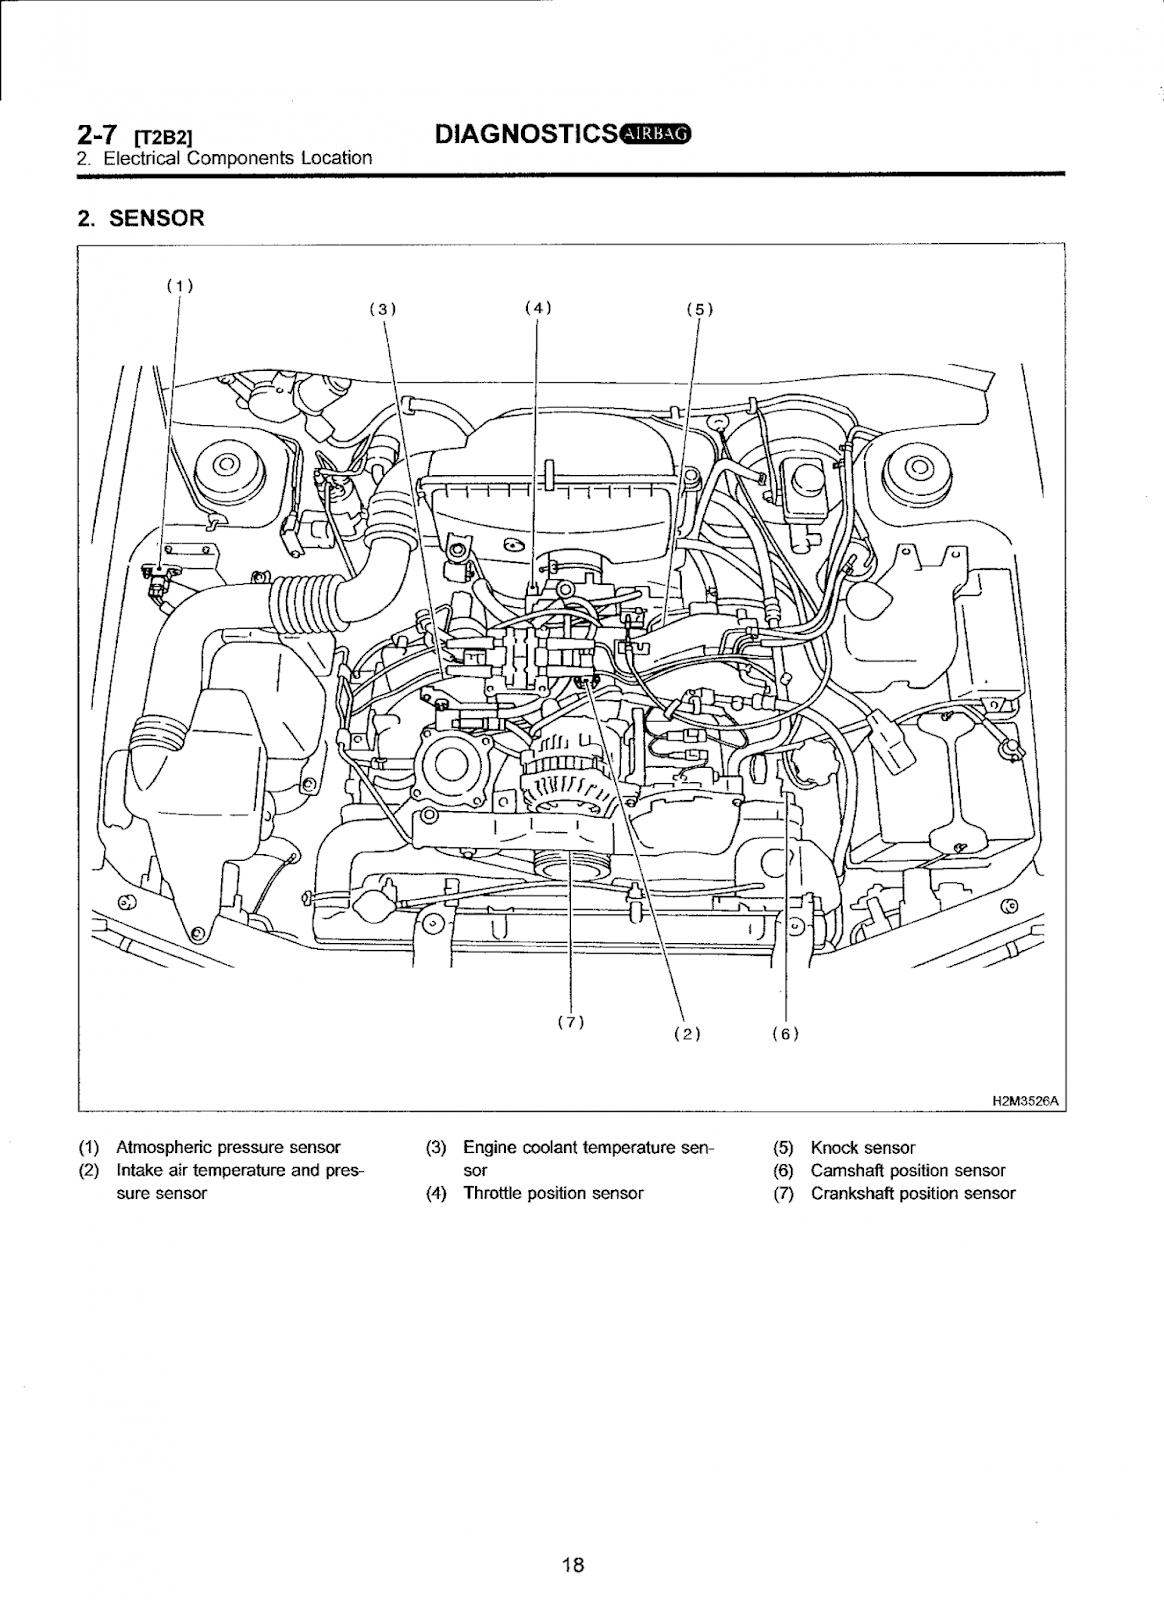 2009 subaru forester wiring diagram 2008 subaru forester boxer engine diagram wiring diagrams all  2008 subaru forester boxer engine